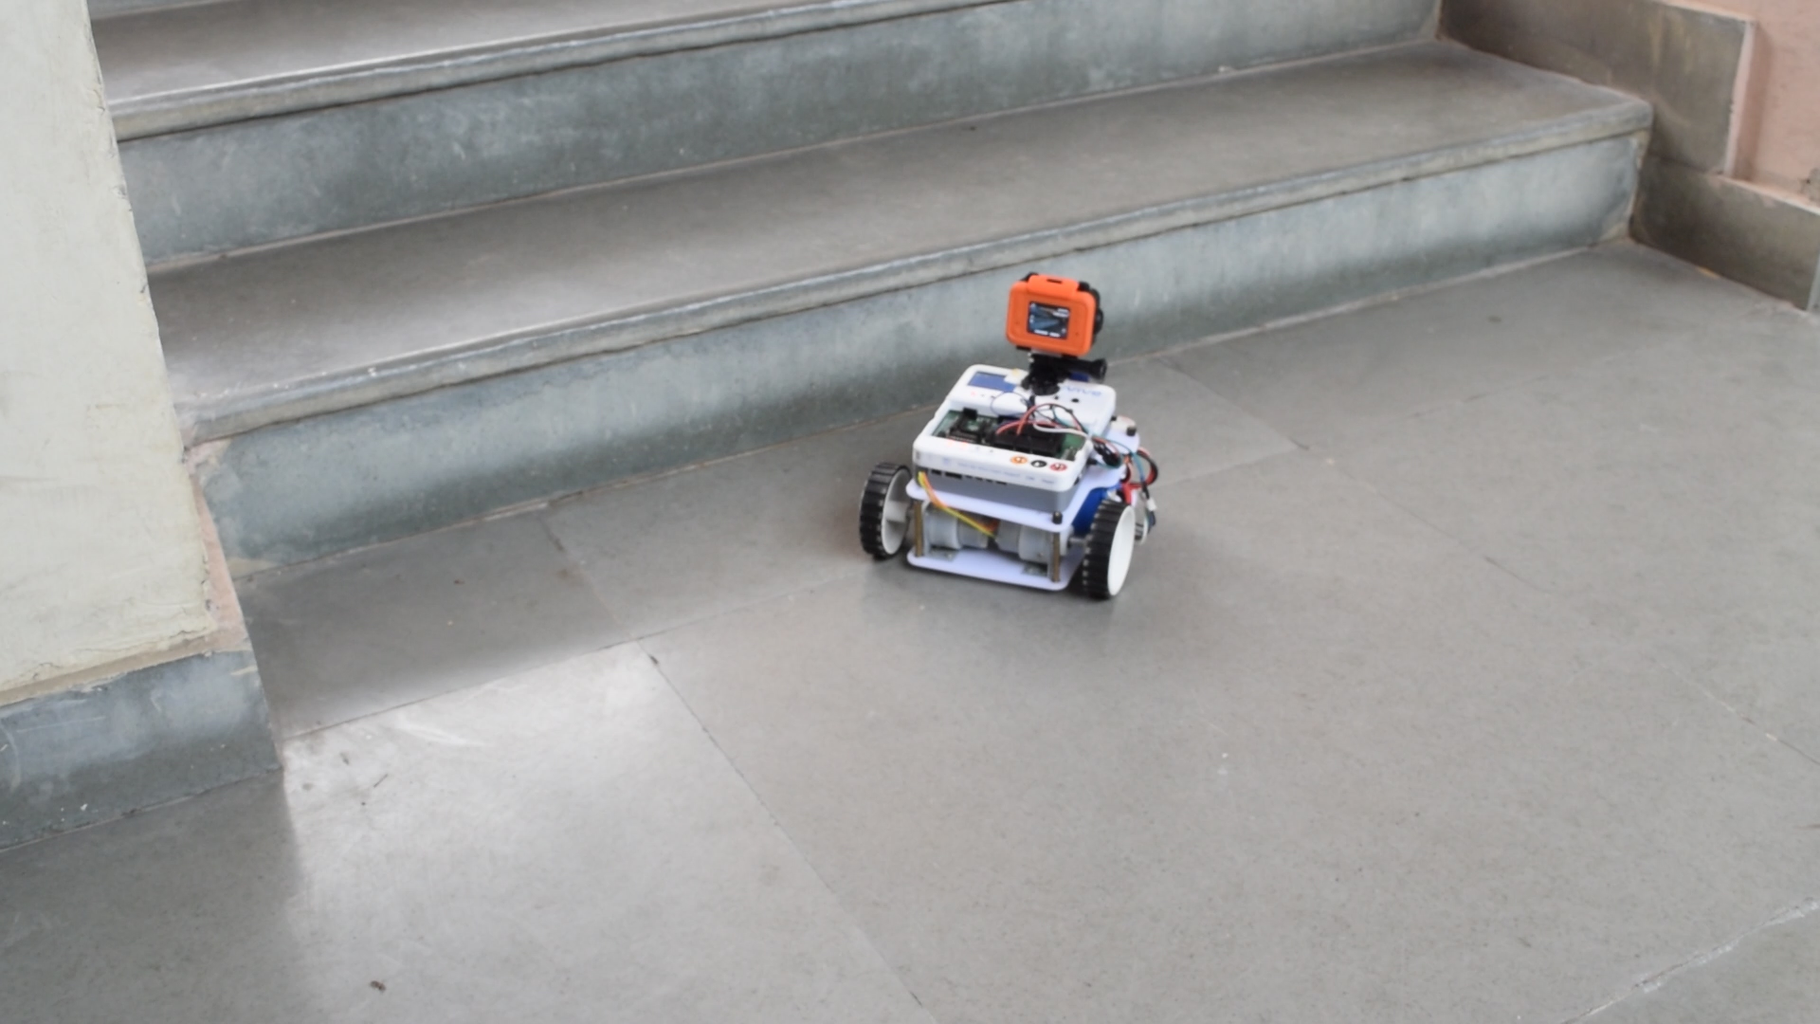 Upload the Obstacle Avoidance Robot Code